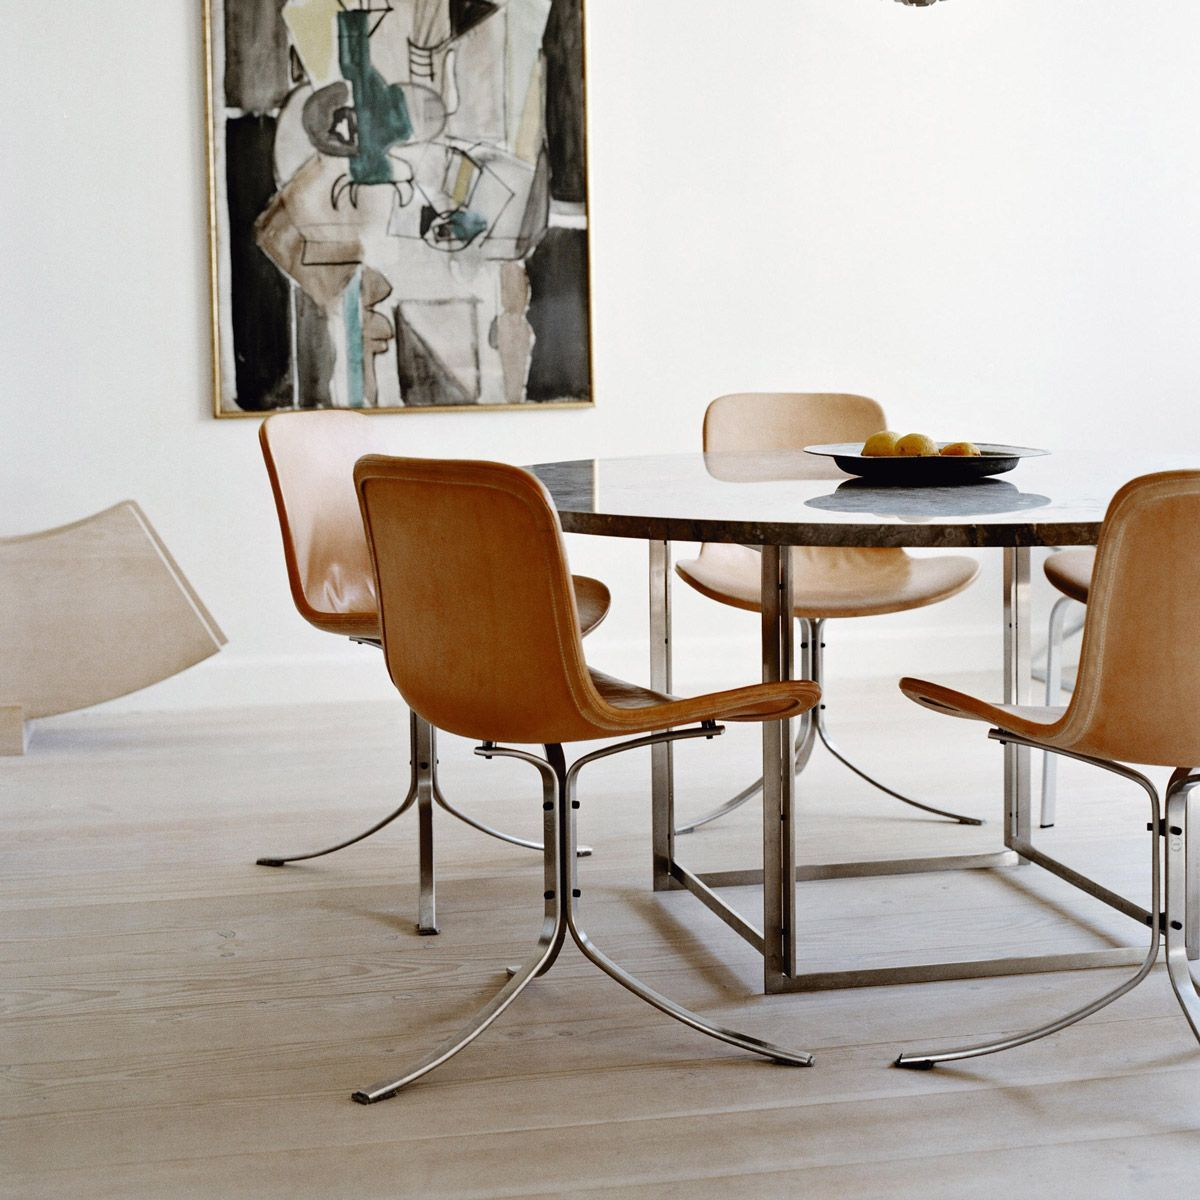 Chair PK9 by Poul Kjaerholm edited by Fritz Hansen